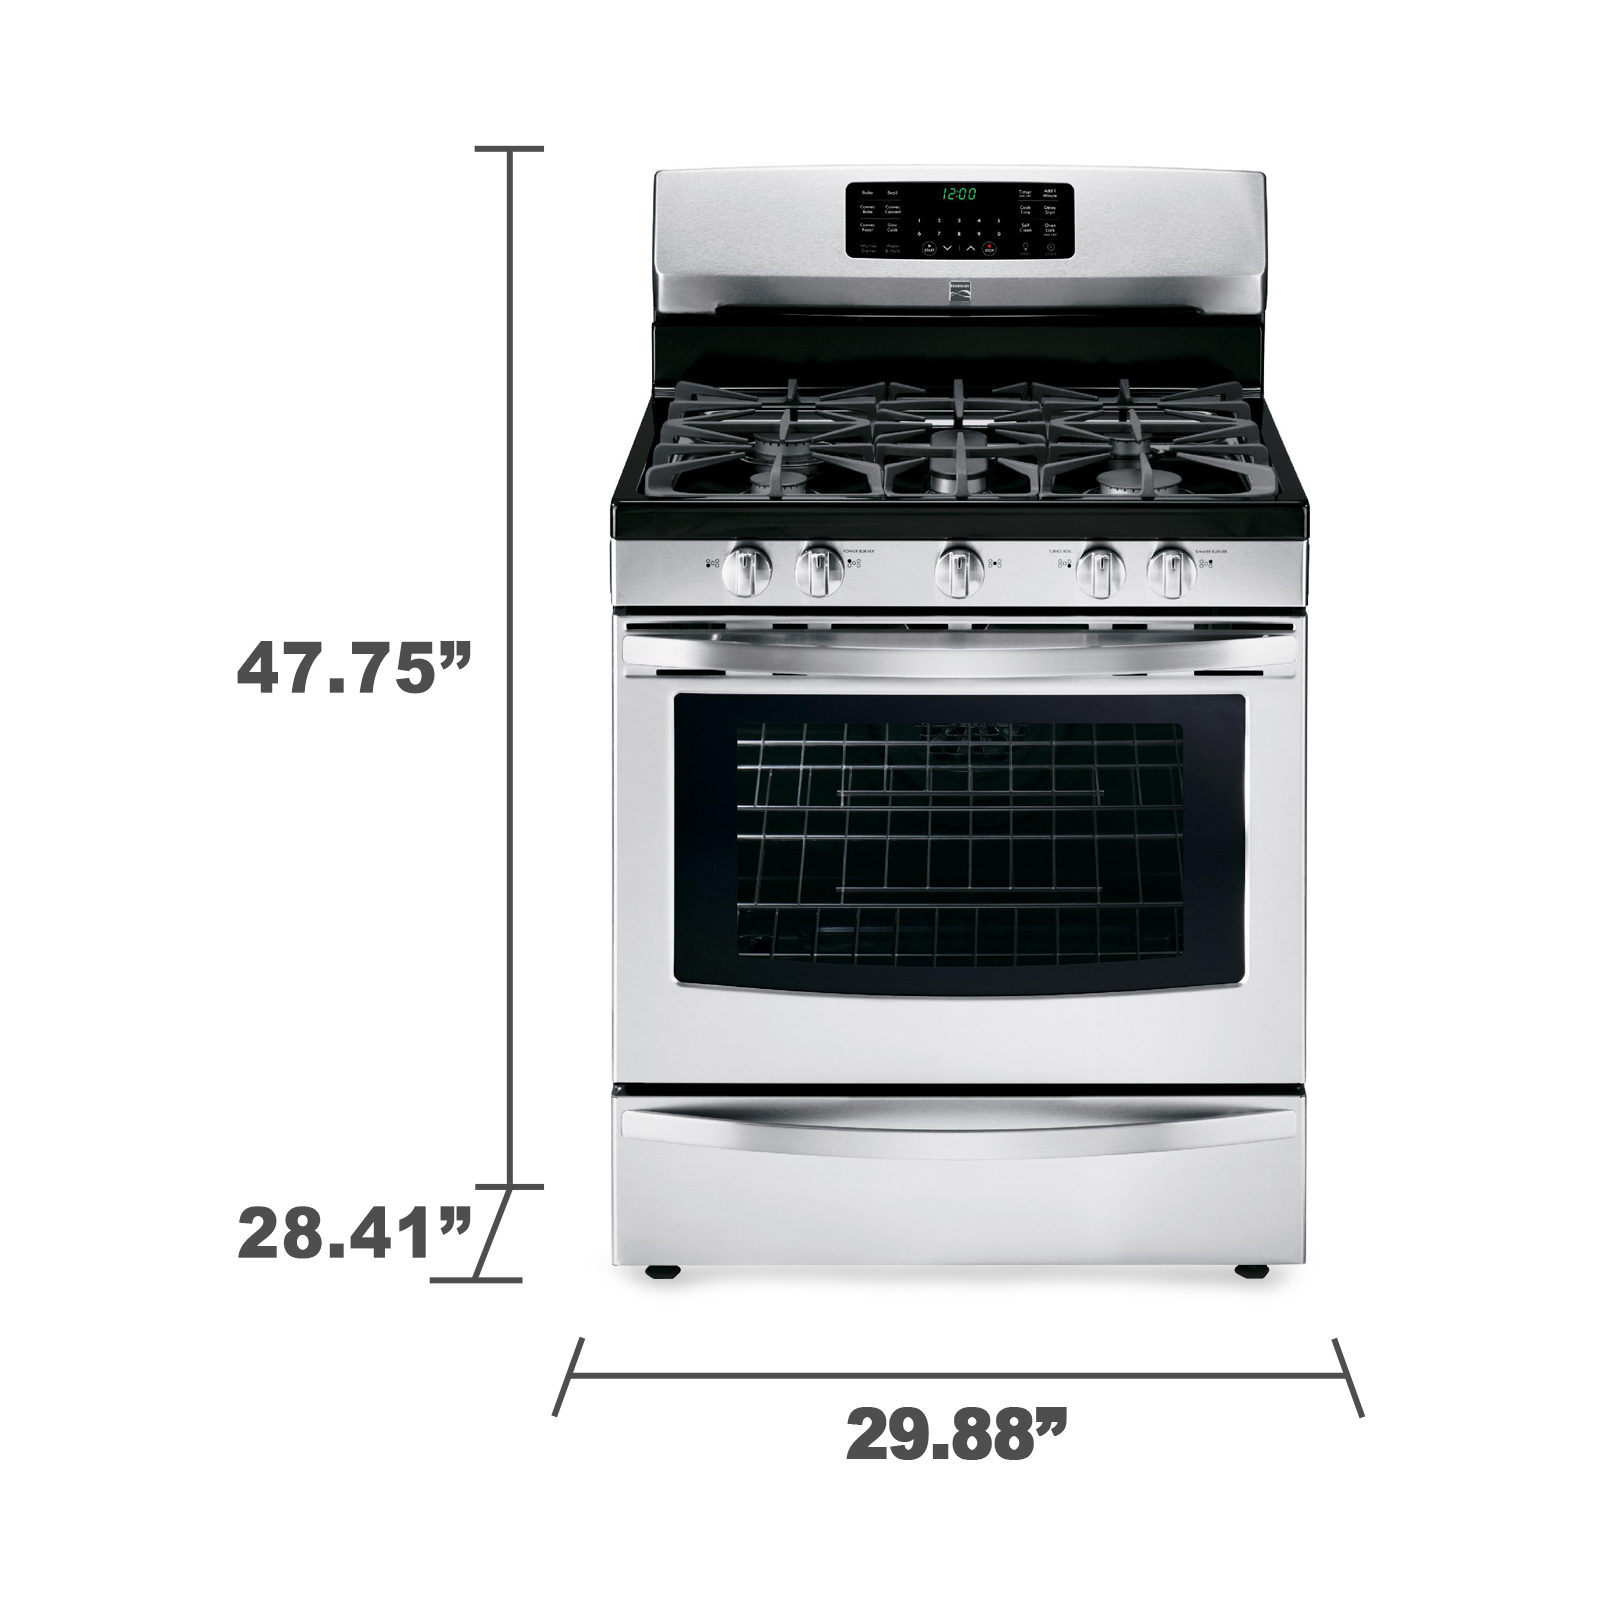 Kenmore 74333 5.6 cu. ft. Gas Range w/ True Convection - Stainless Steel